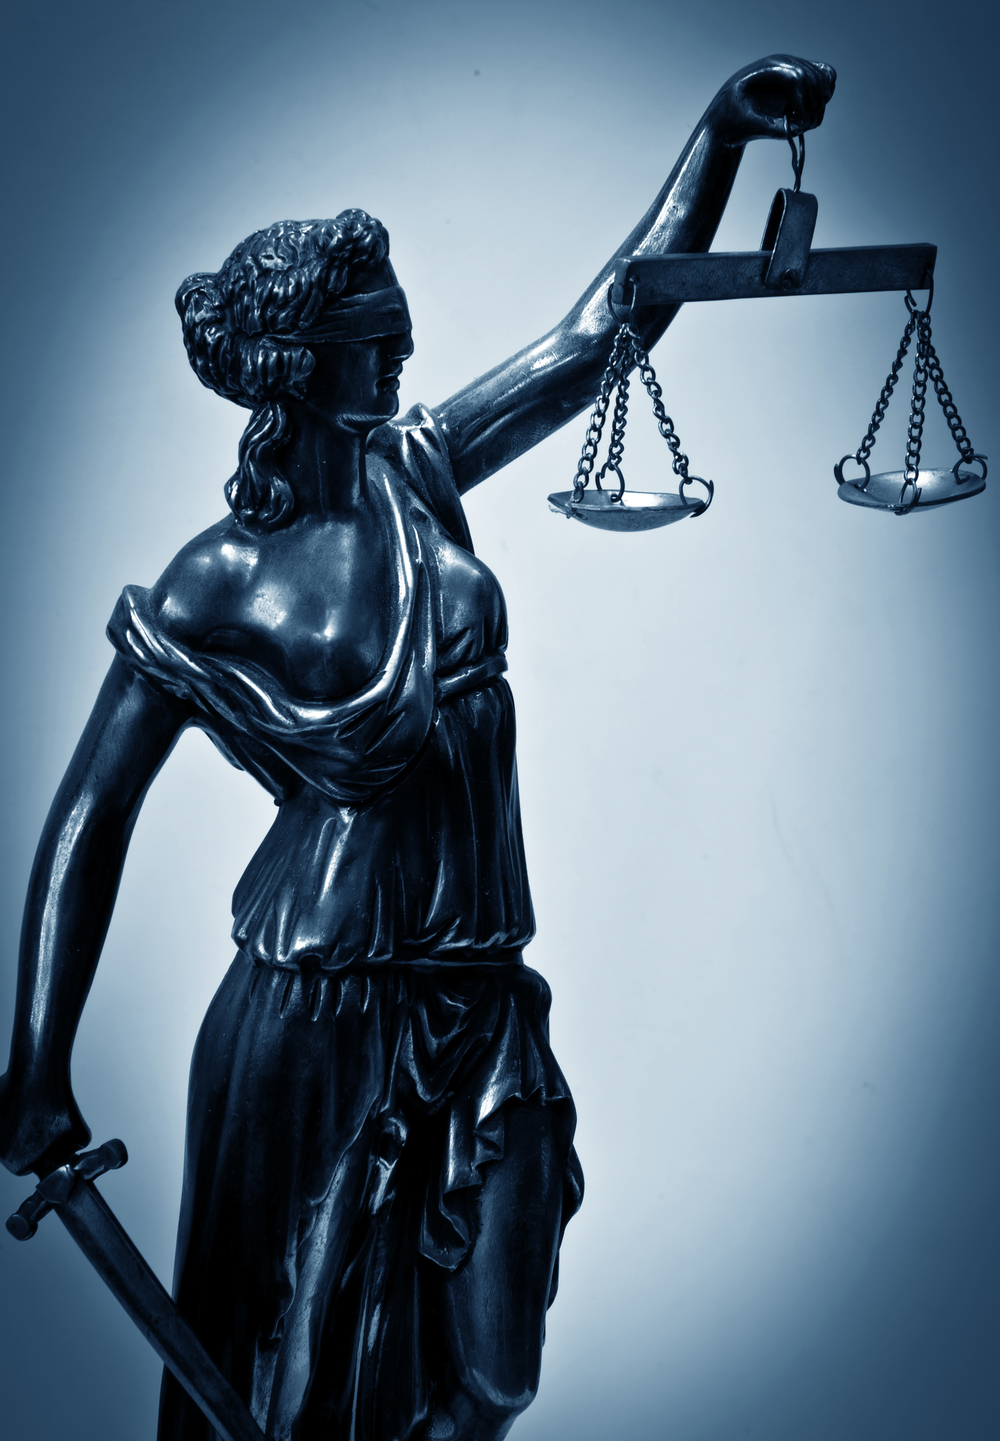 Justice Is Blind - Except for the Police — Michael Spratt